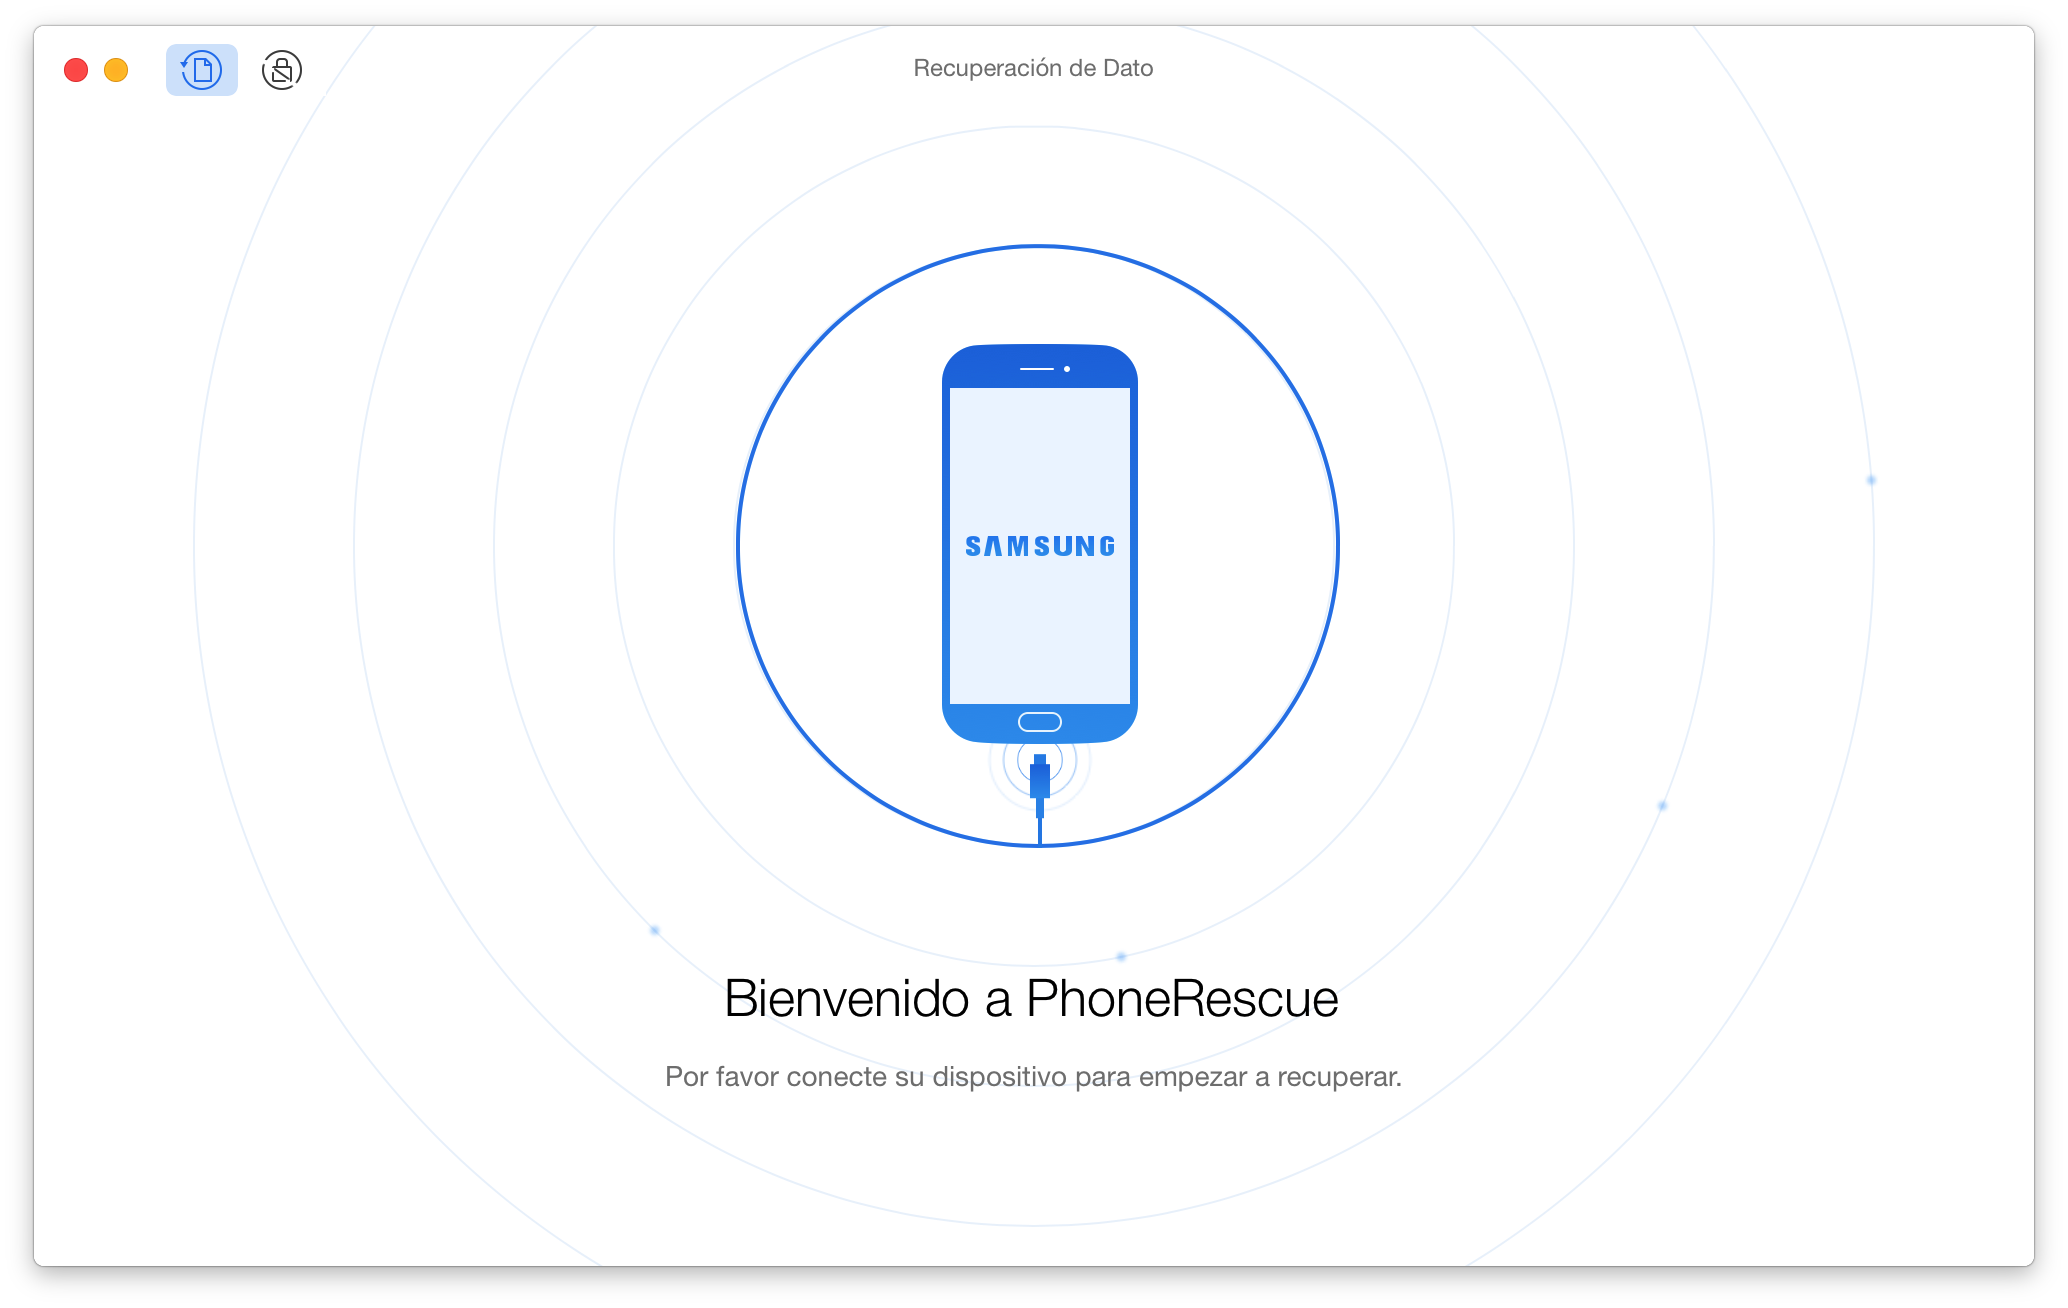 The welcome interface of PhoneRescue for HTC